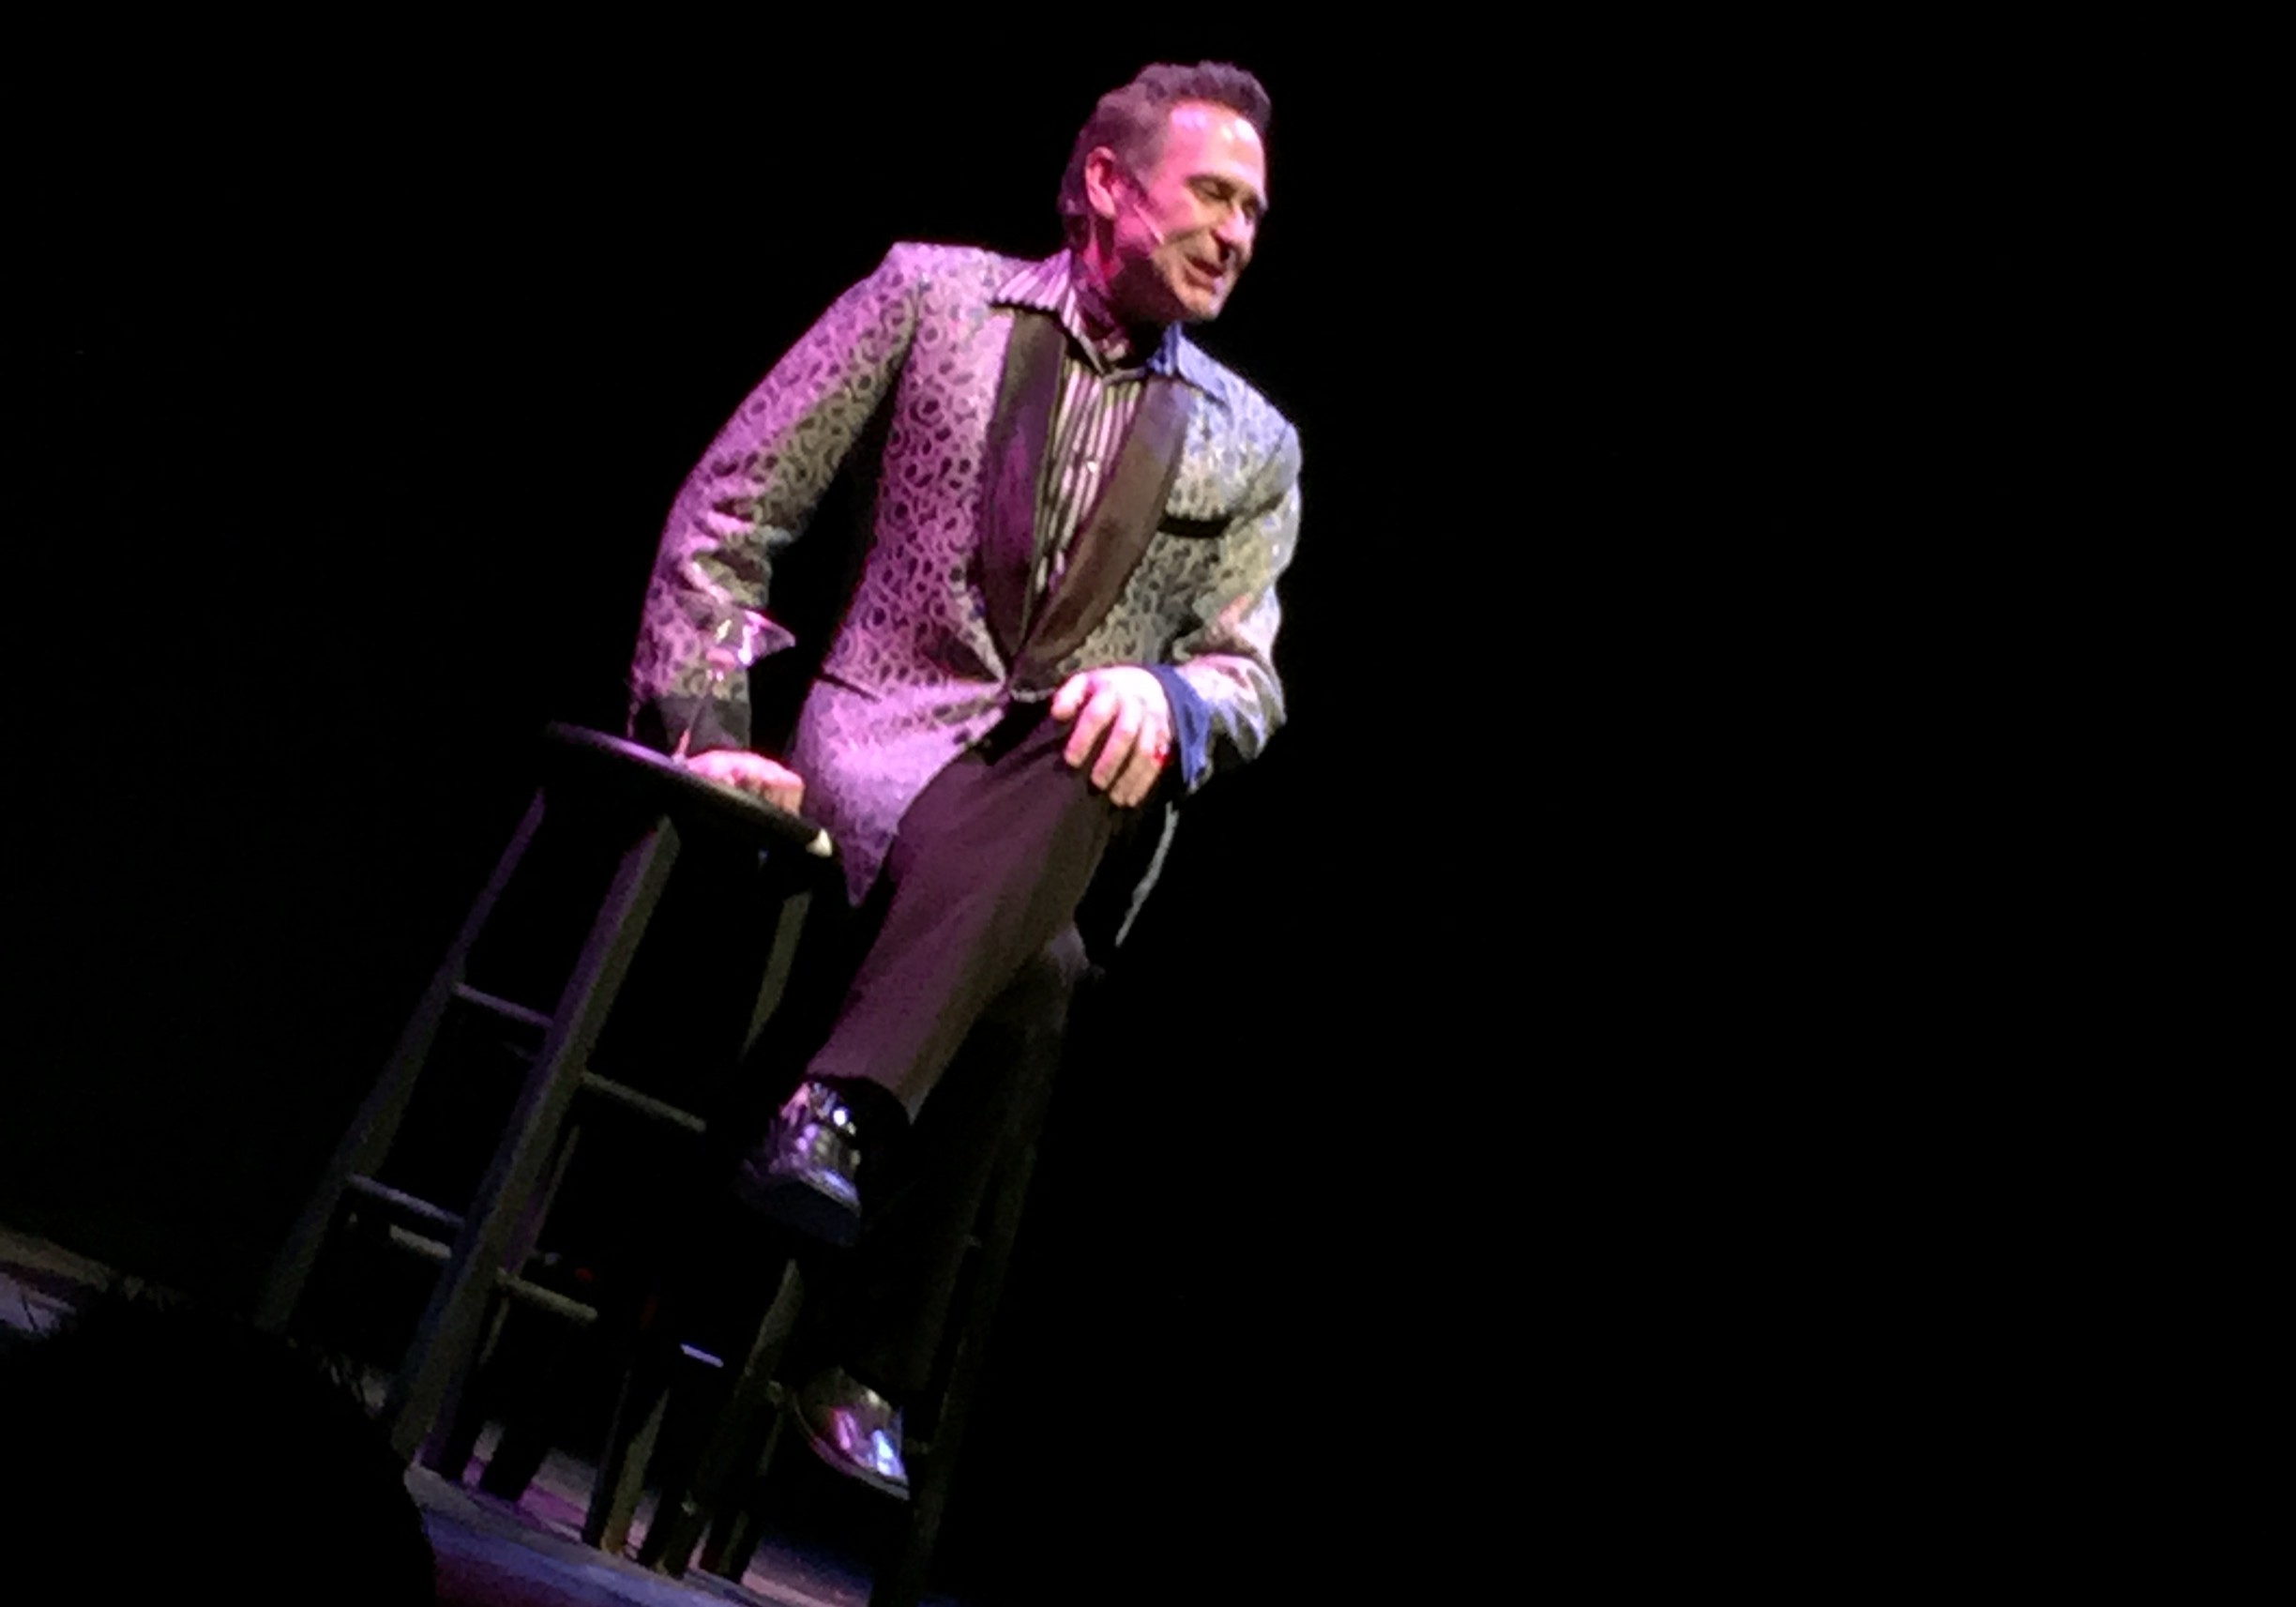 buddy cole1 e1431702643907 Live Review: The Kids in the Hall at Chicagos Vic Theatre (5/14)